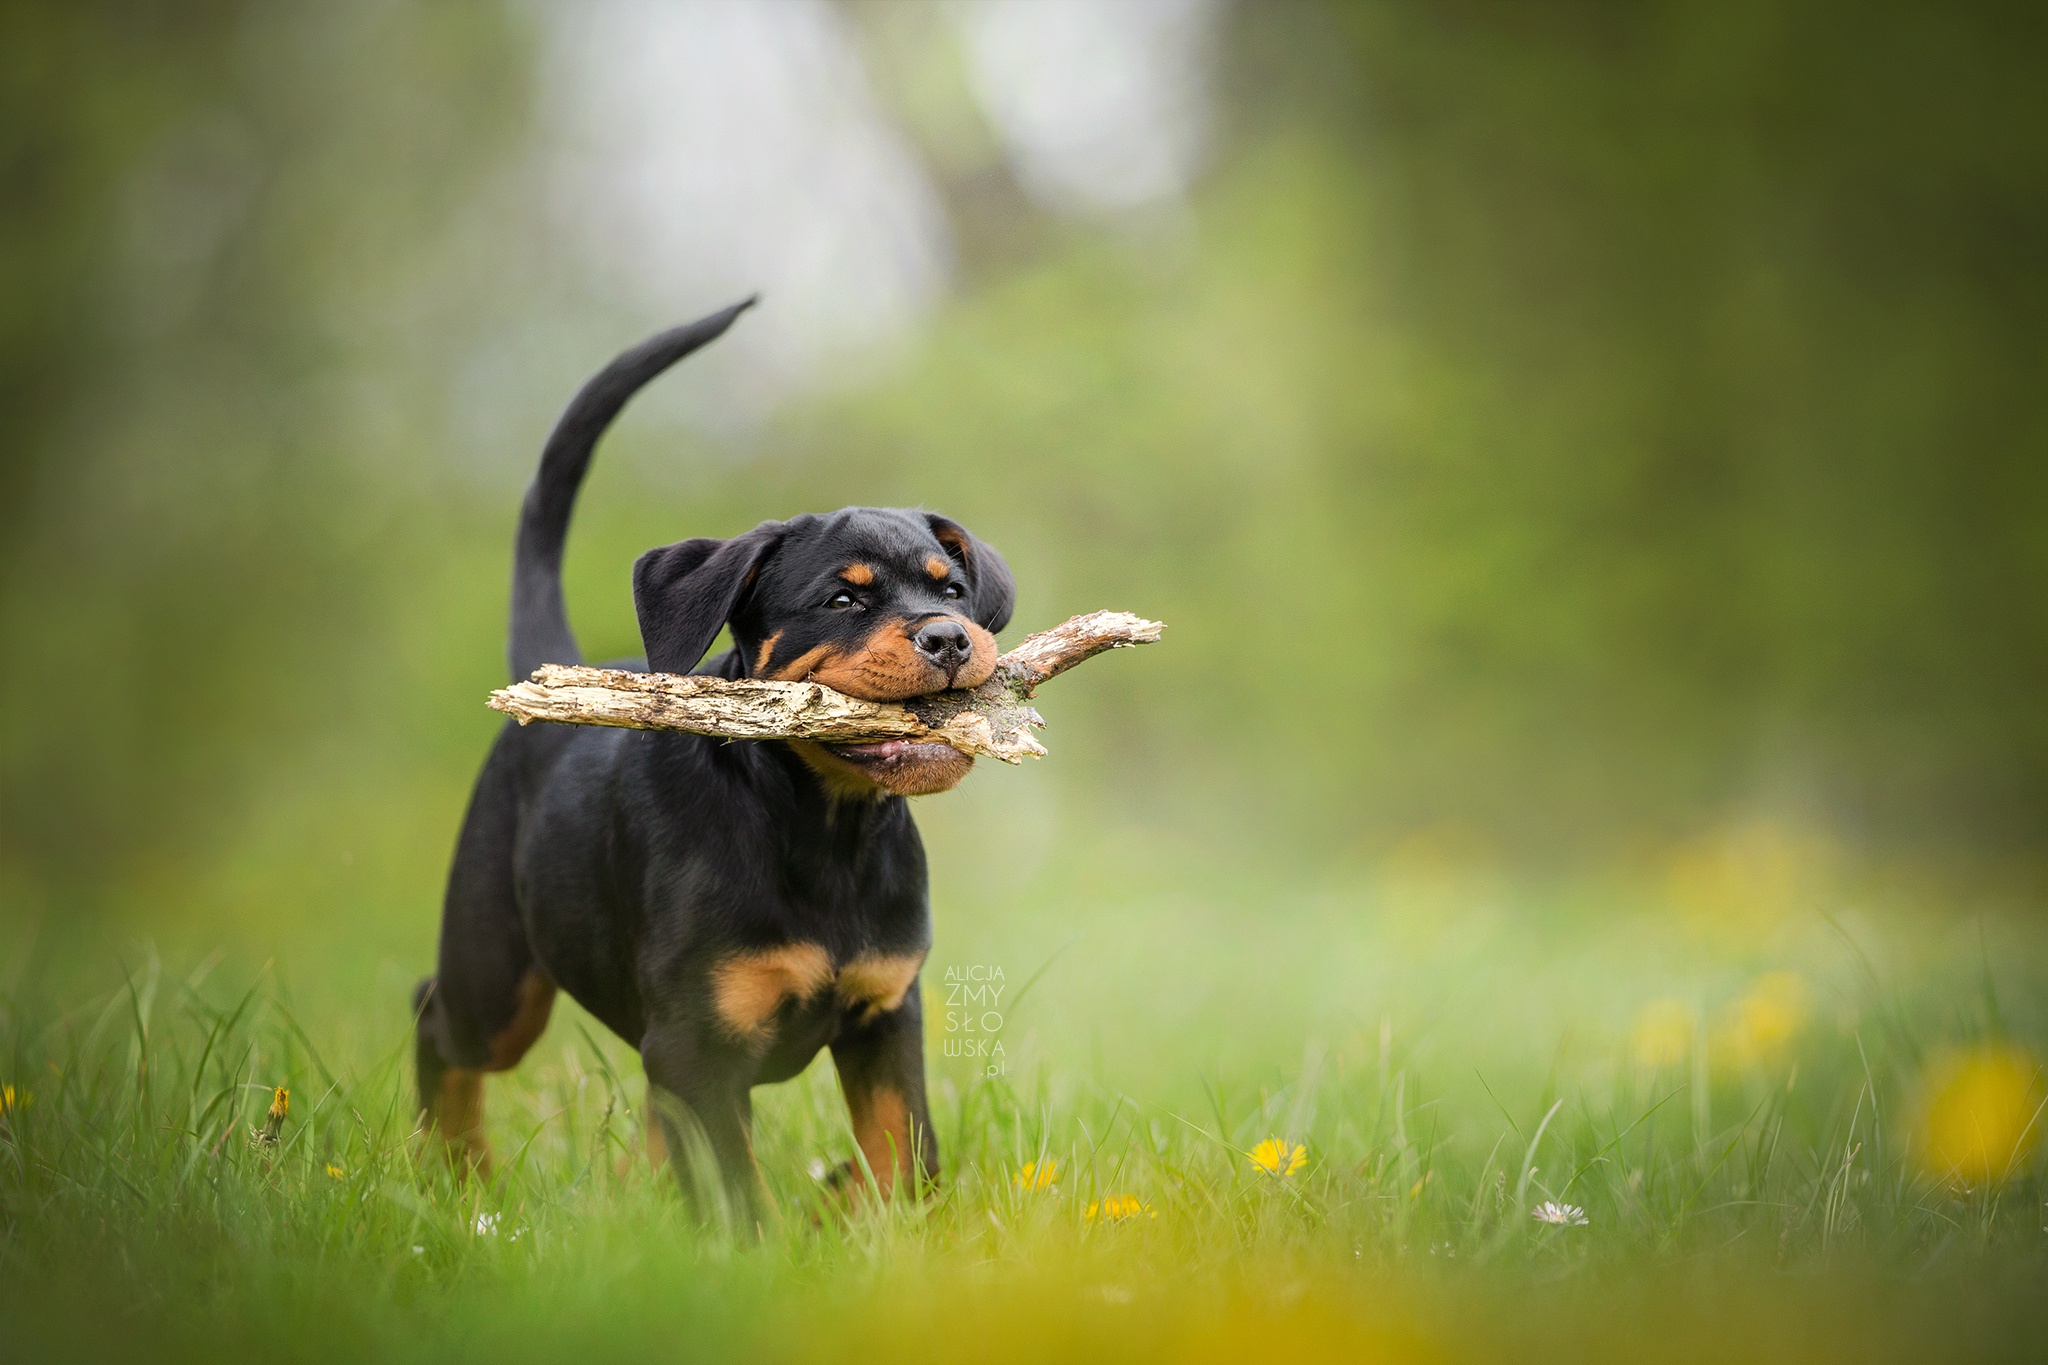 Cute Puppy Wallpapers For Iphone Rottweiler Hd Wallpaper Background Image 2048x1365